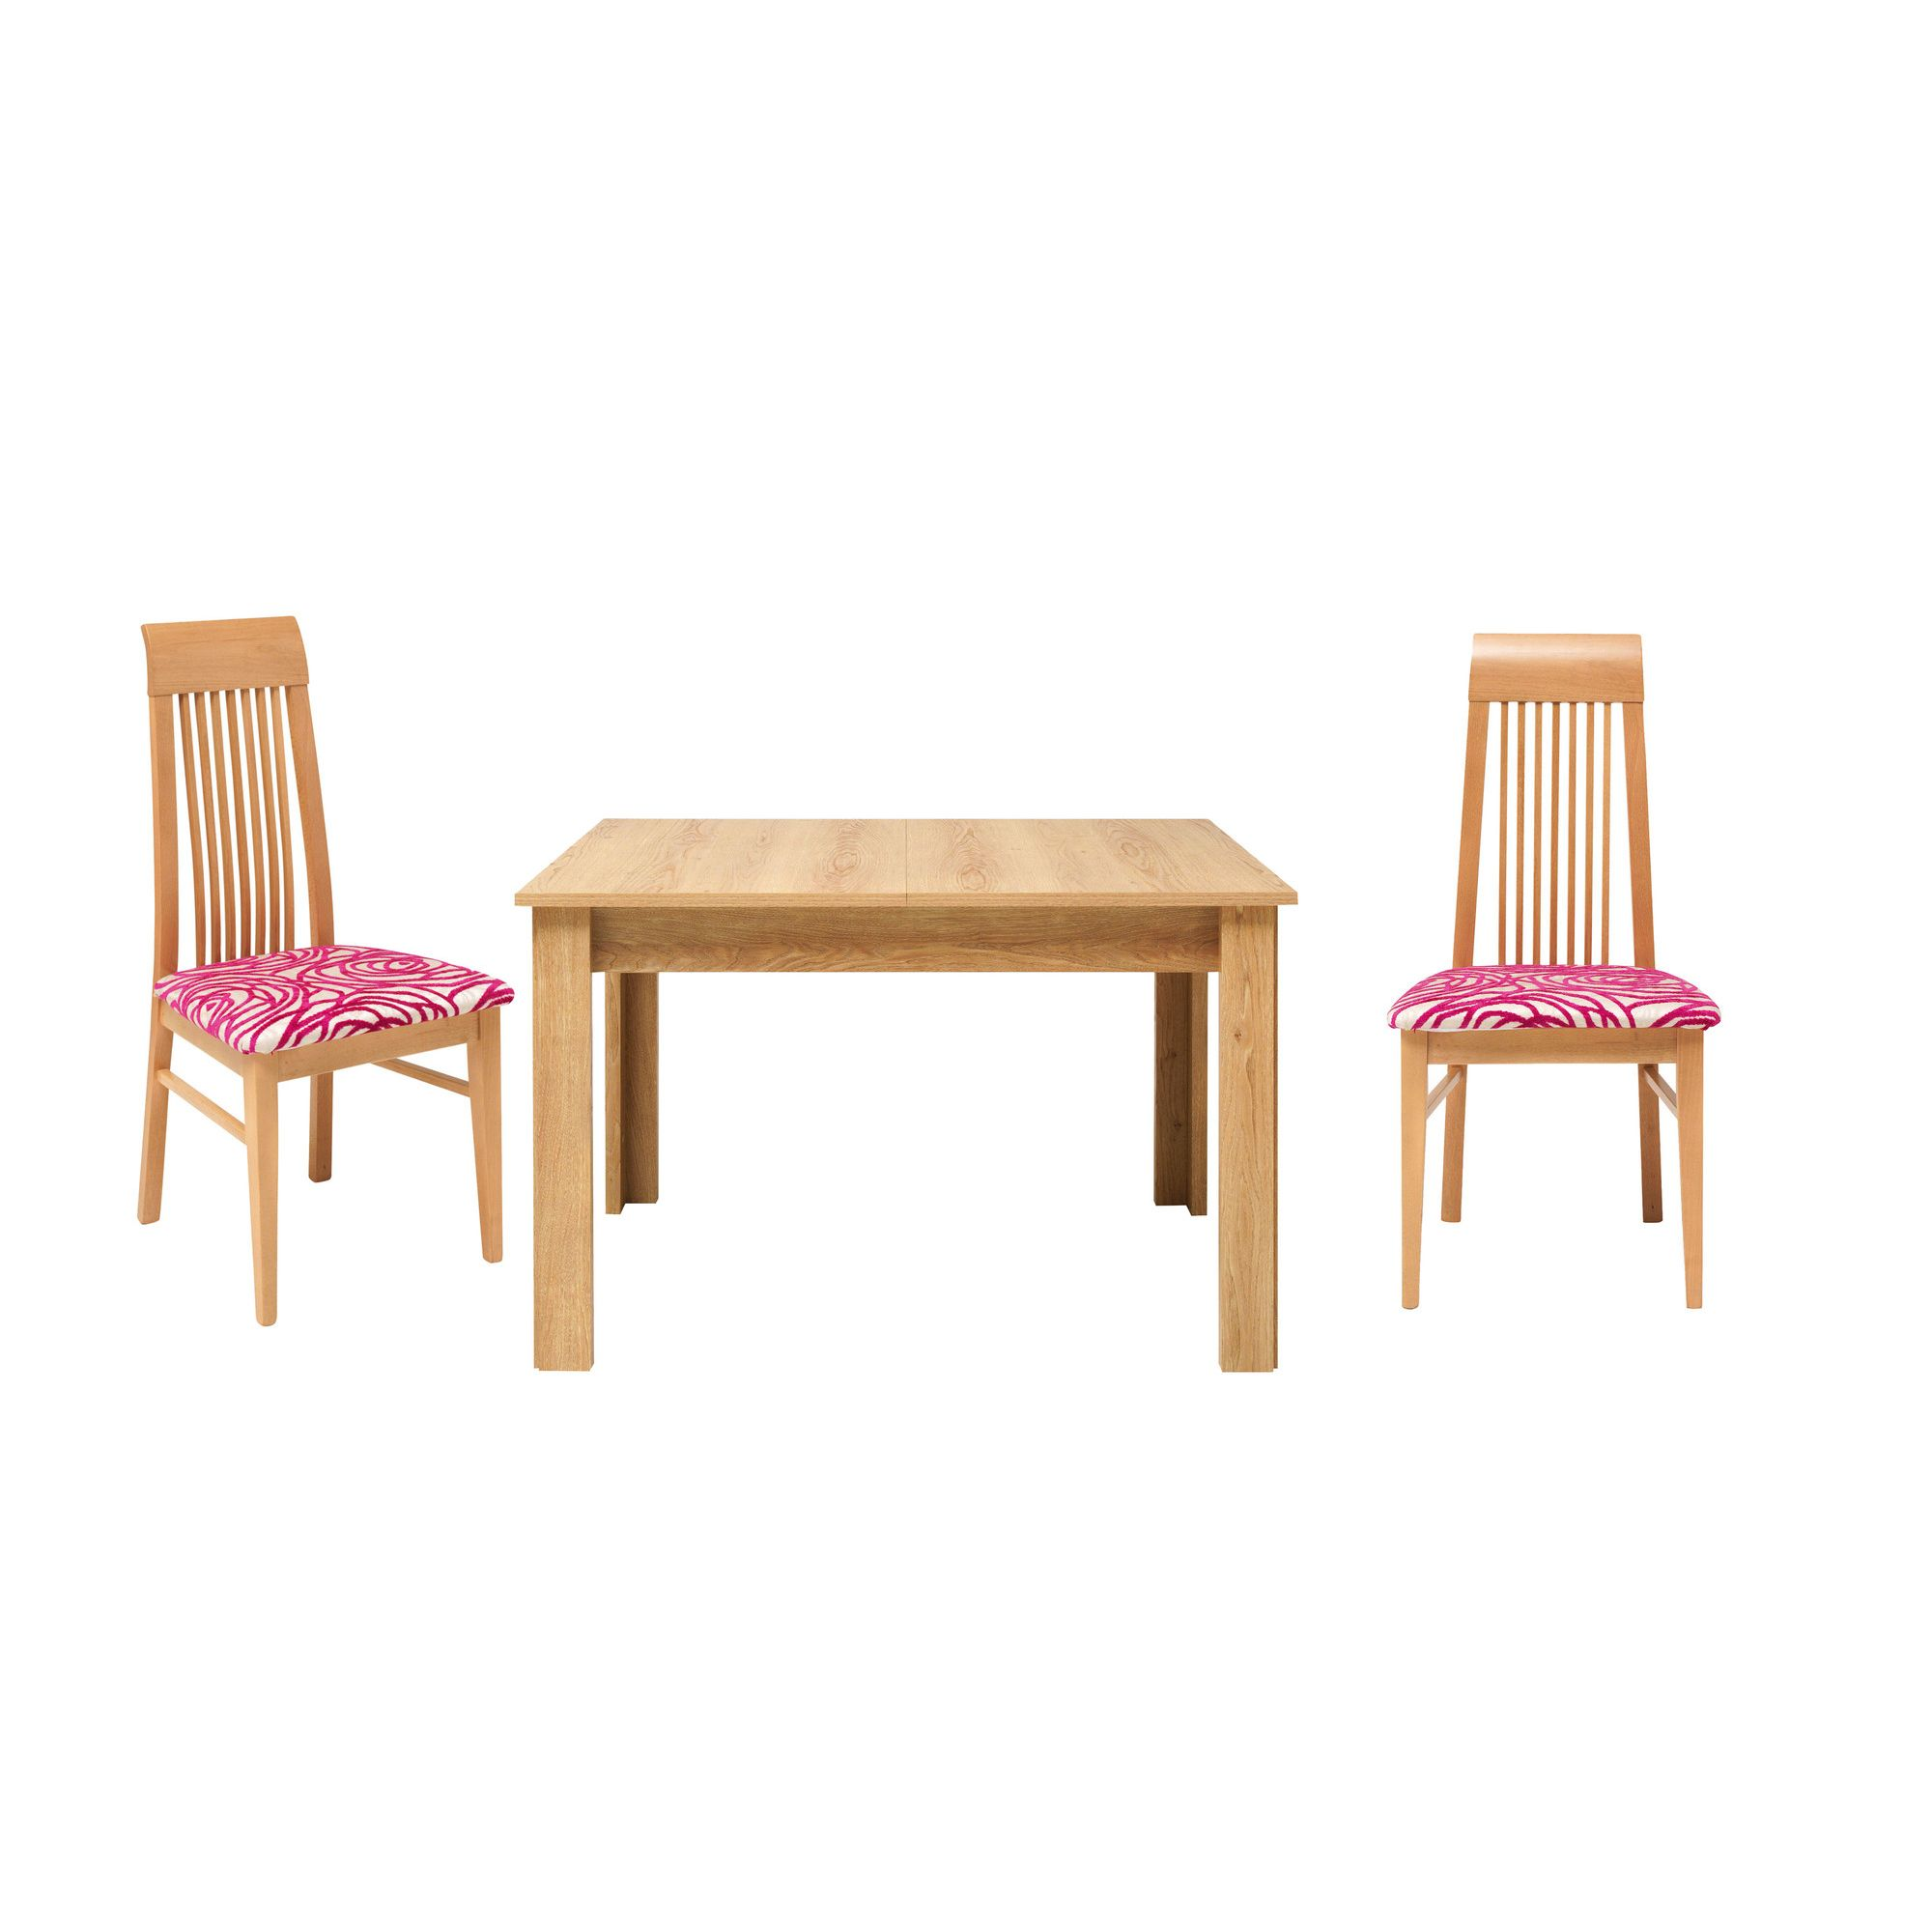 Caxton Darwin Dining Table Set with 4 Slatted Back Chair in Chestnut at Tesco Direct